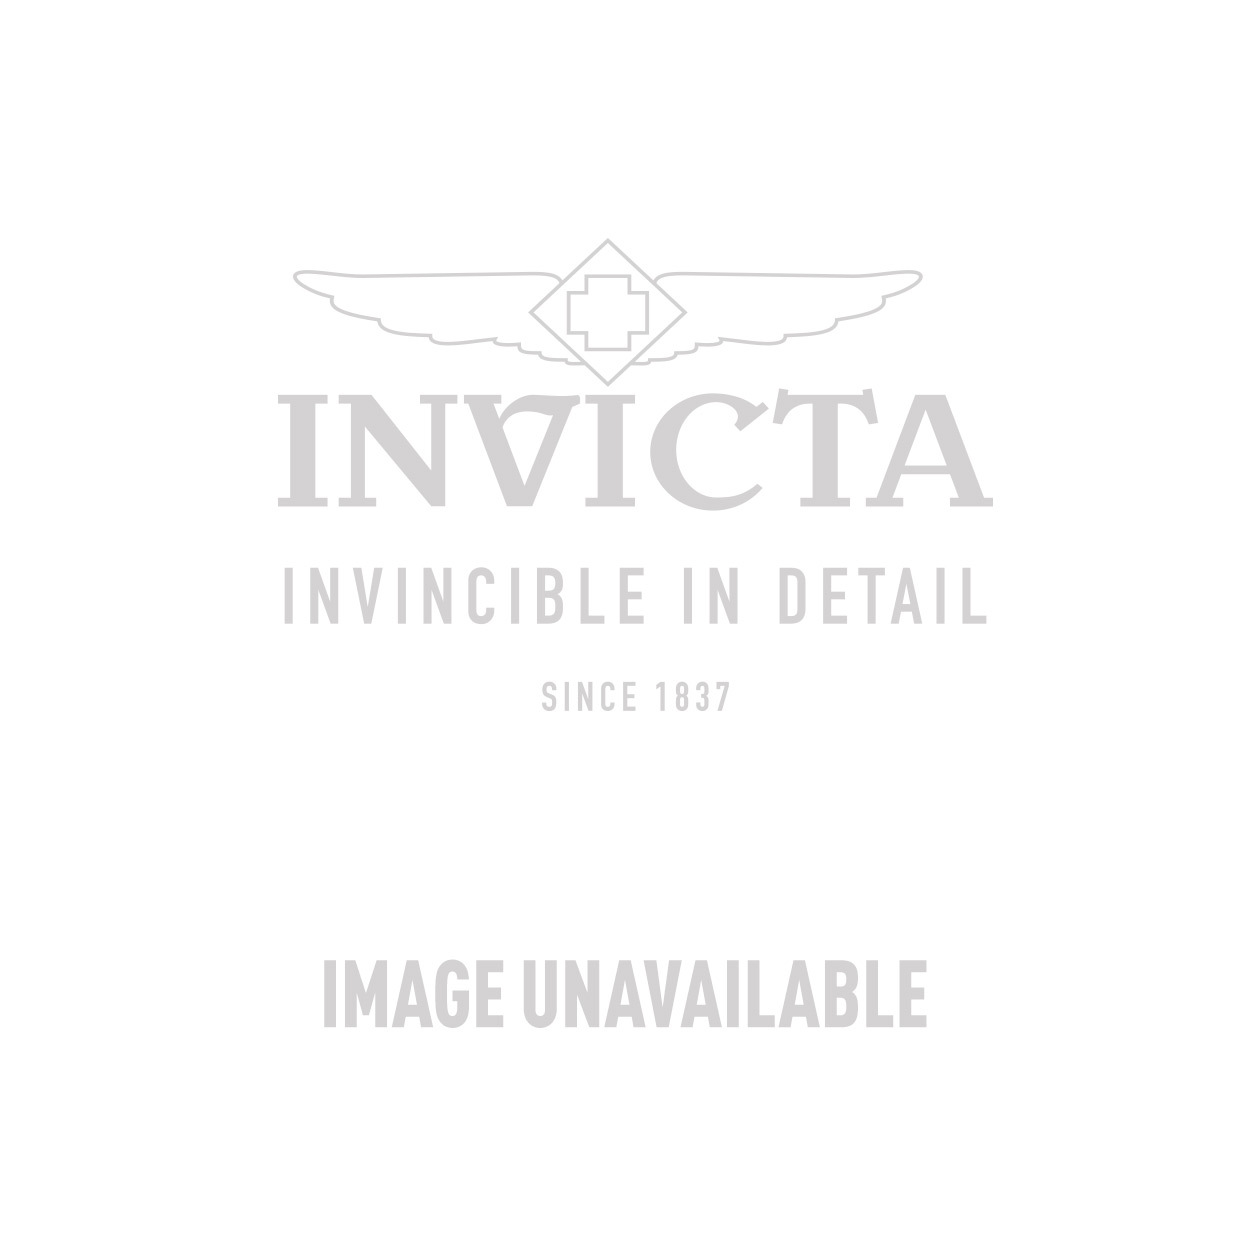 Invicta Angel Swiss Movement Quartz Watch - Rose Gold case with Rose Gold tone Stainless Steel band - Model 17902